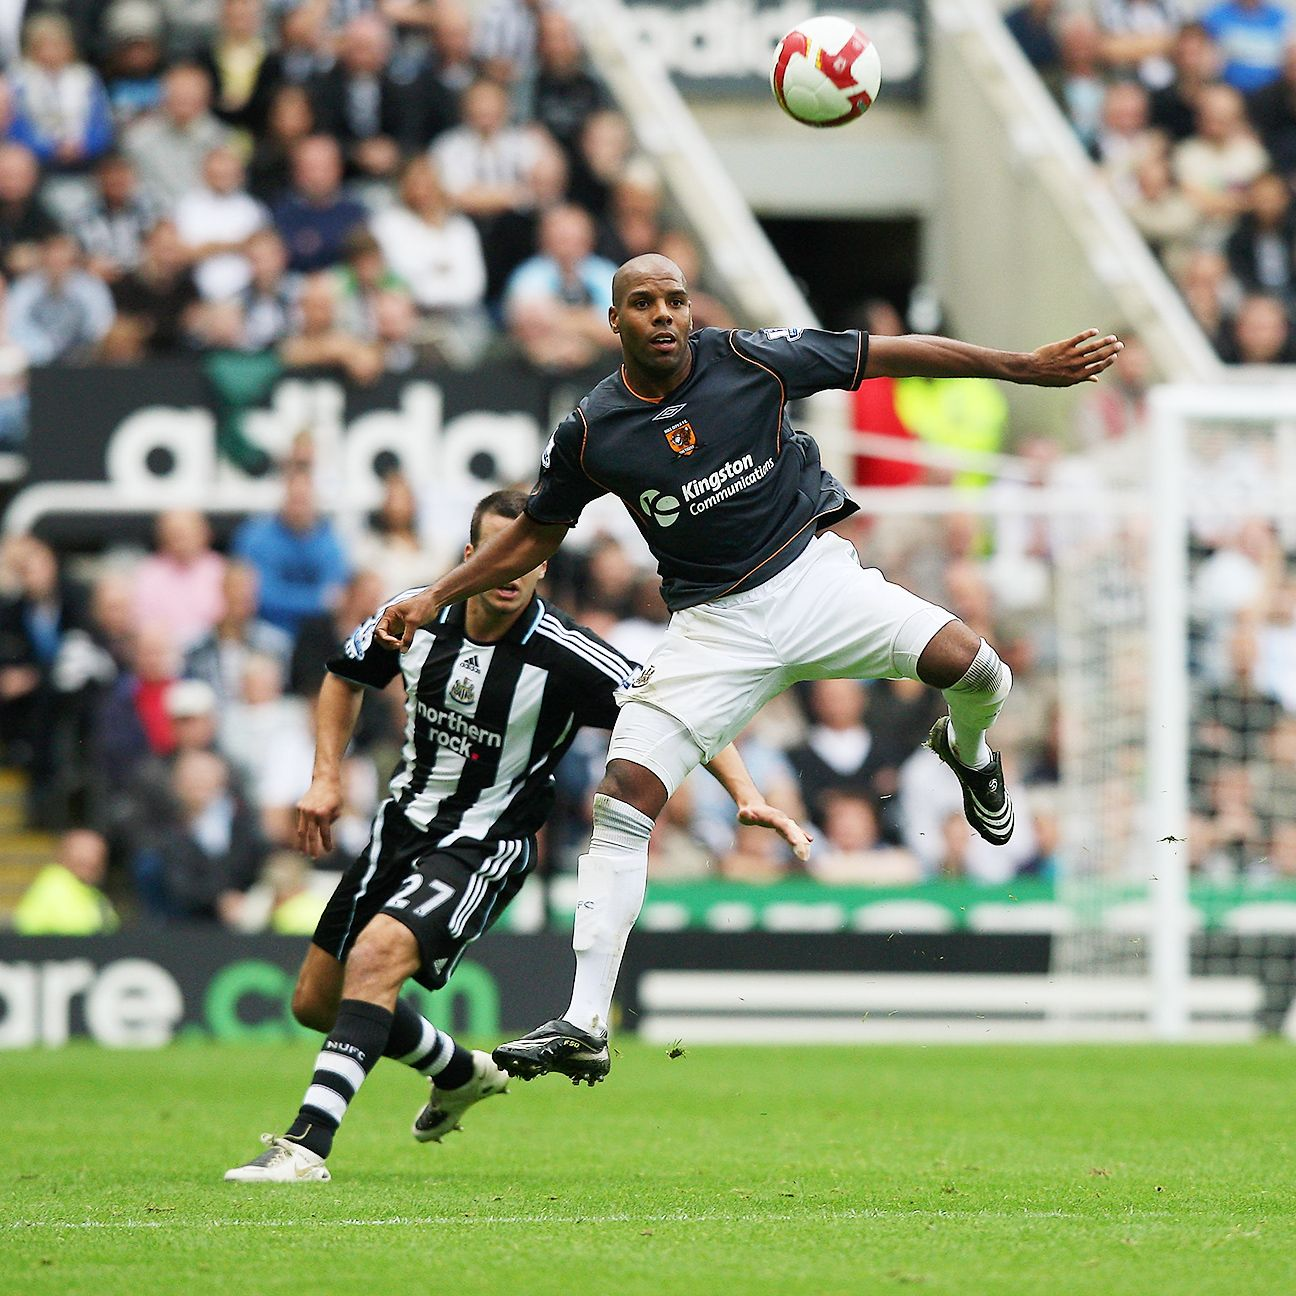 Hull City fans are hoping for a repeat of 2008 when Marlon King's brace downed a Newcastle side in crisis.